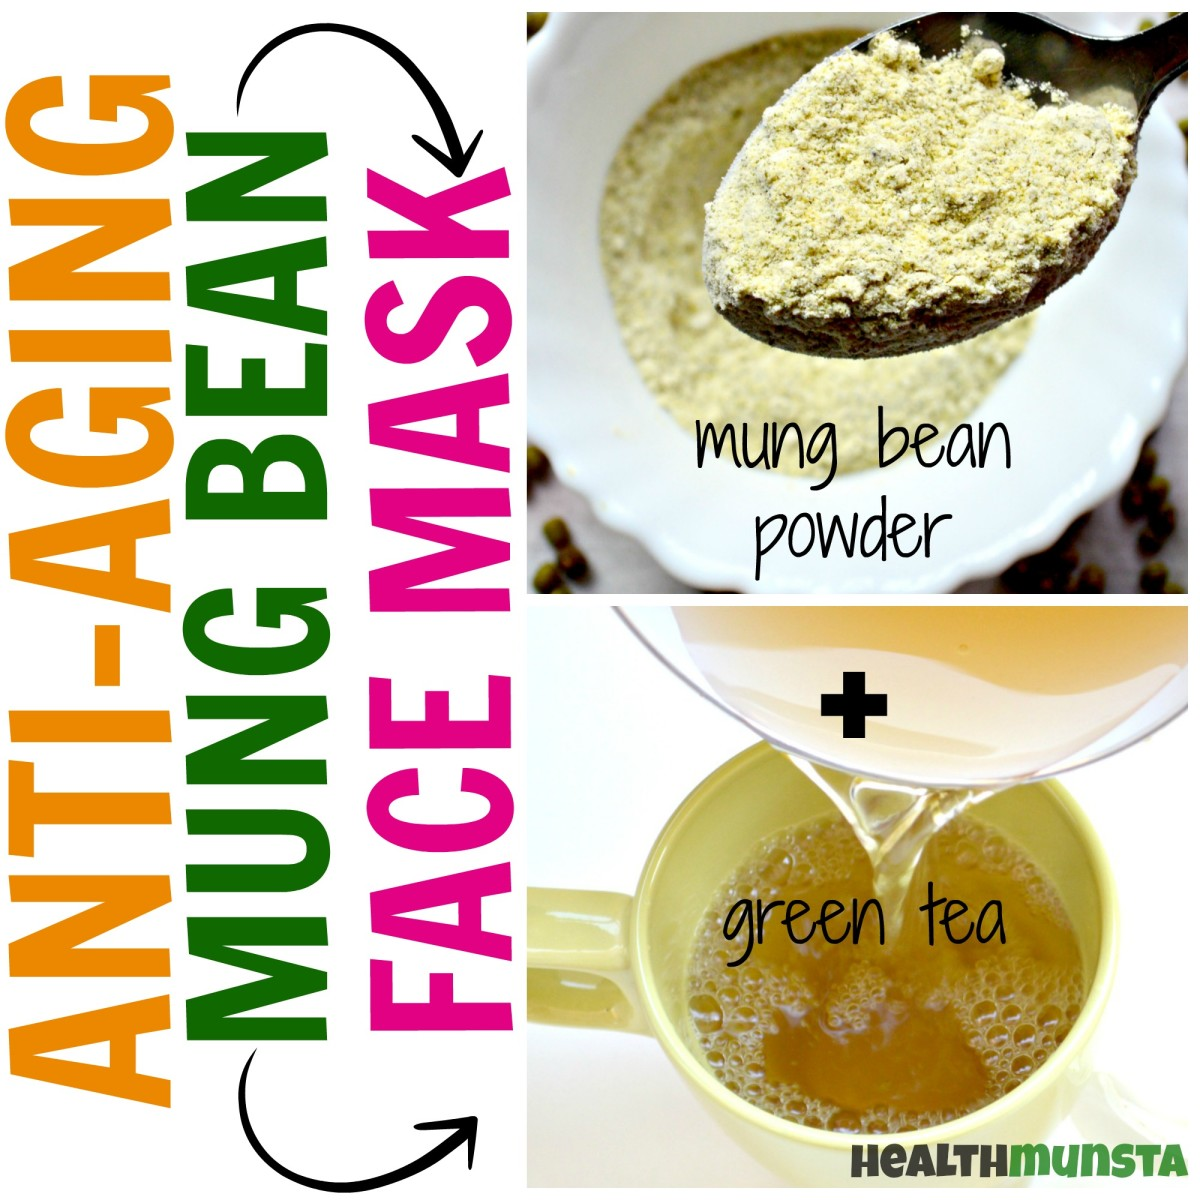 Green tea contains excellent anti-aging properties that work internally as well as externally.